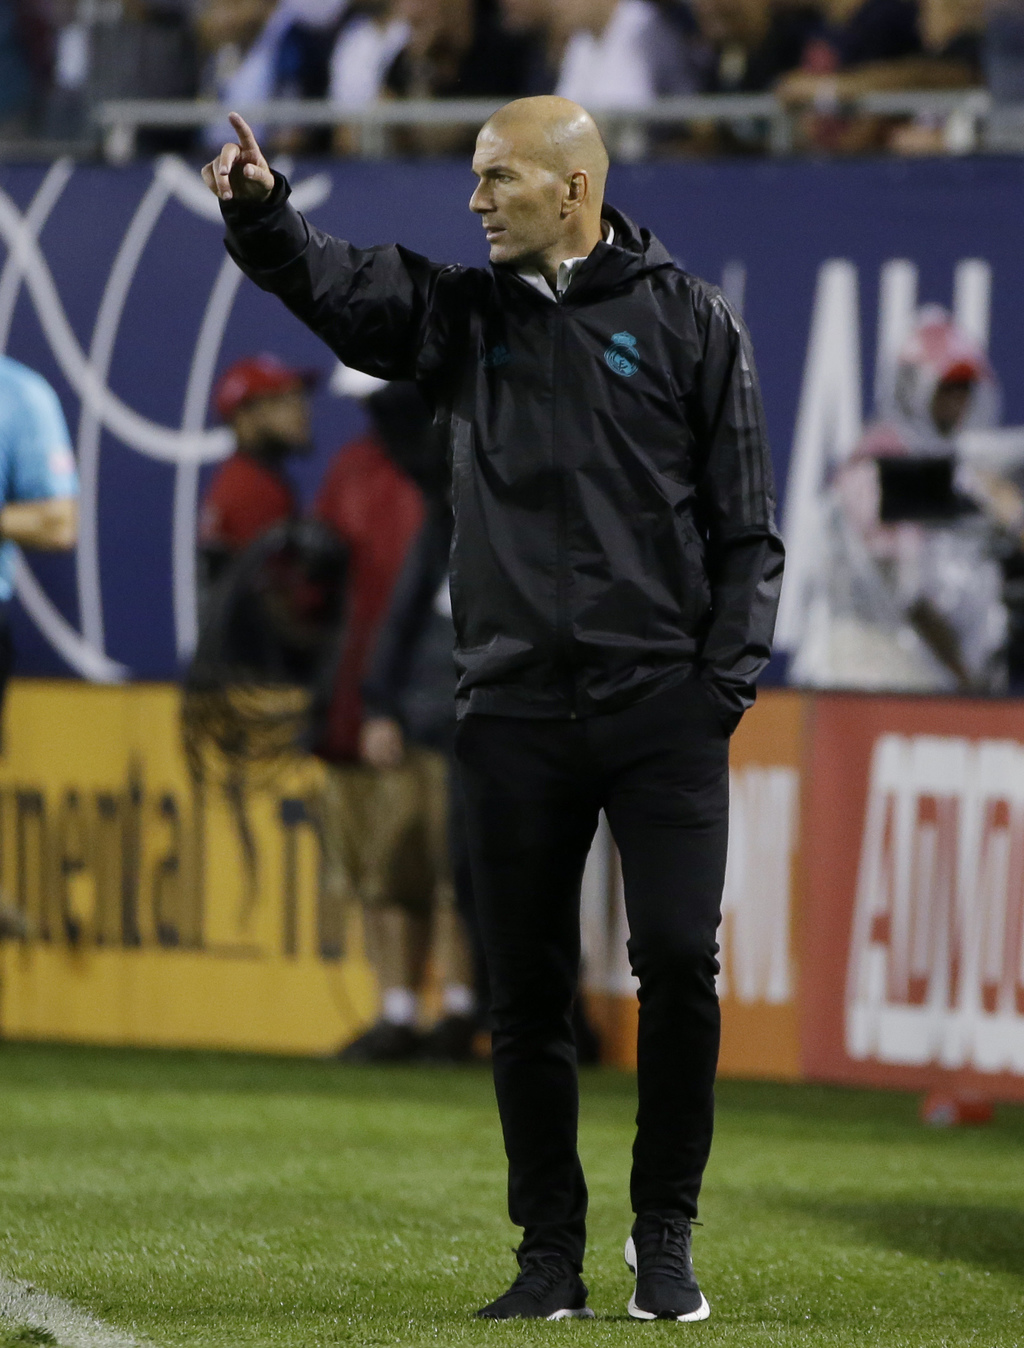 Real Madrid coach Zinedine Zidane points as he talks to his players during the first half of the MLS All-Star Game against the MLS All-Stars, Wednesda...